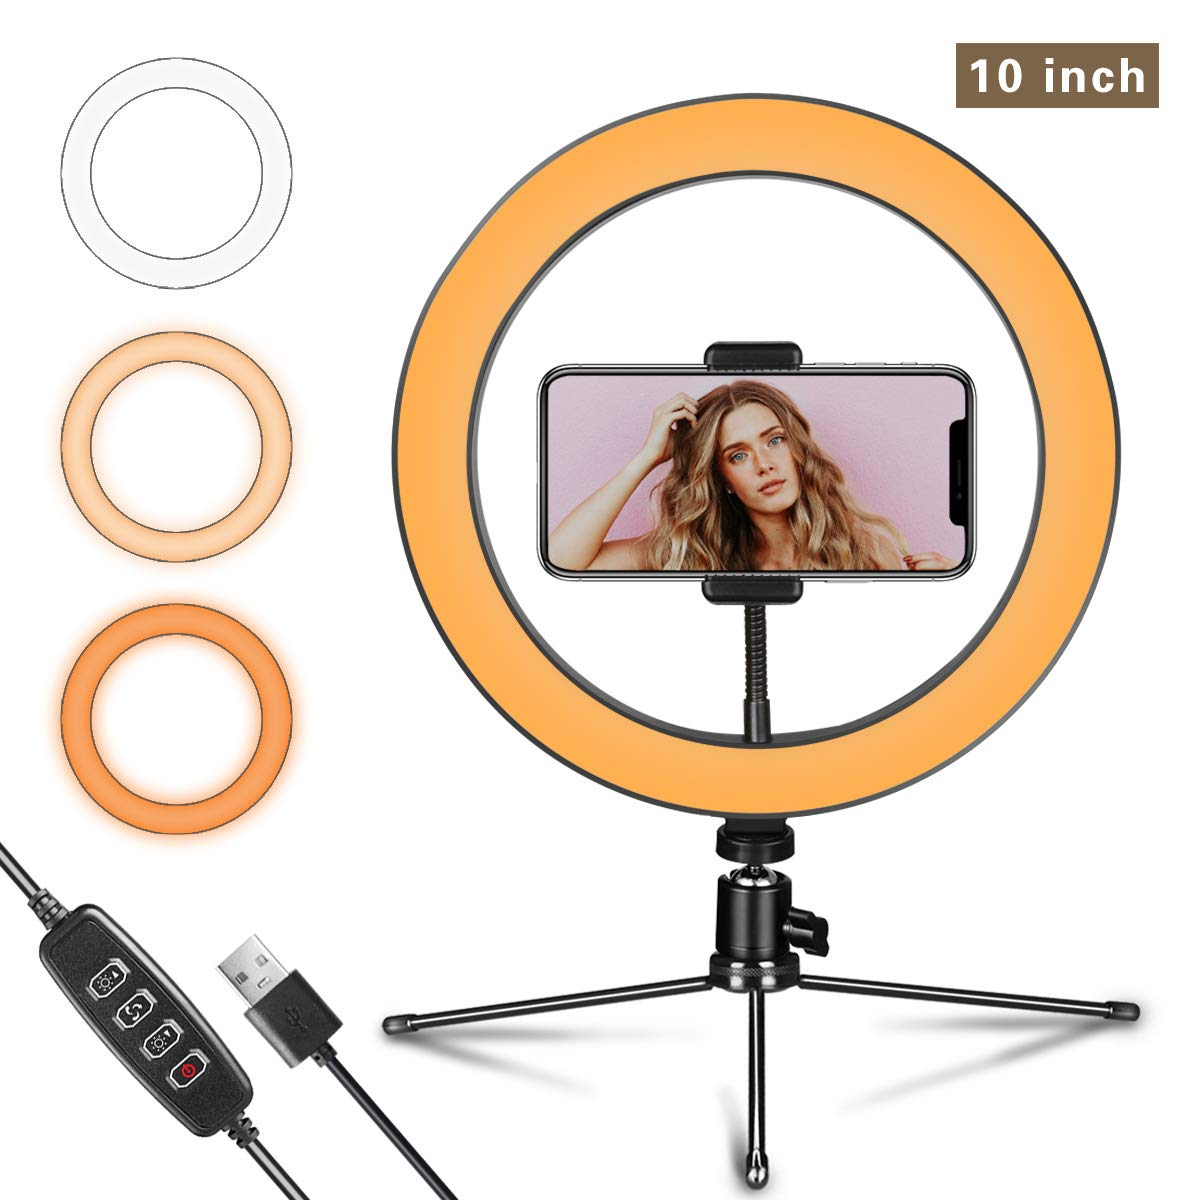 Ring Light 10'' with Tripod Stand and Phone Holder for YouTube Video & Streaming, Desk Makeup LED Ring Light Dimmable for Photography Lighting, Selfie with 3 Light Modes & 10 Brightness Level(10'')